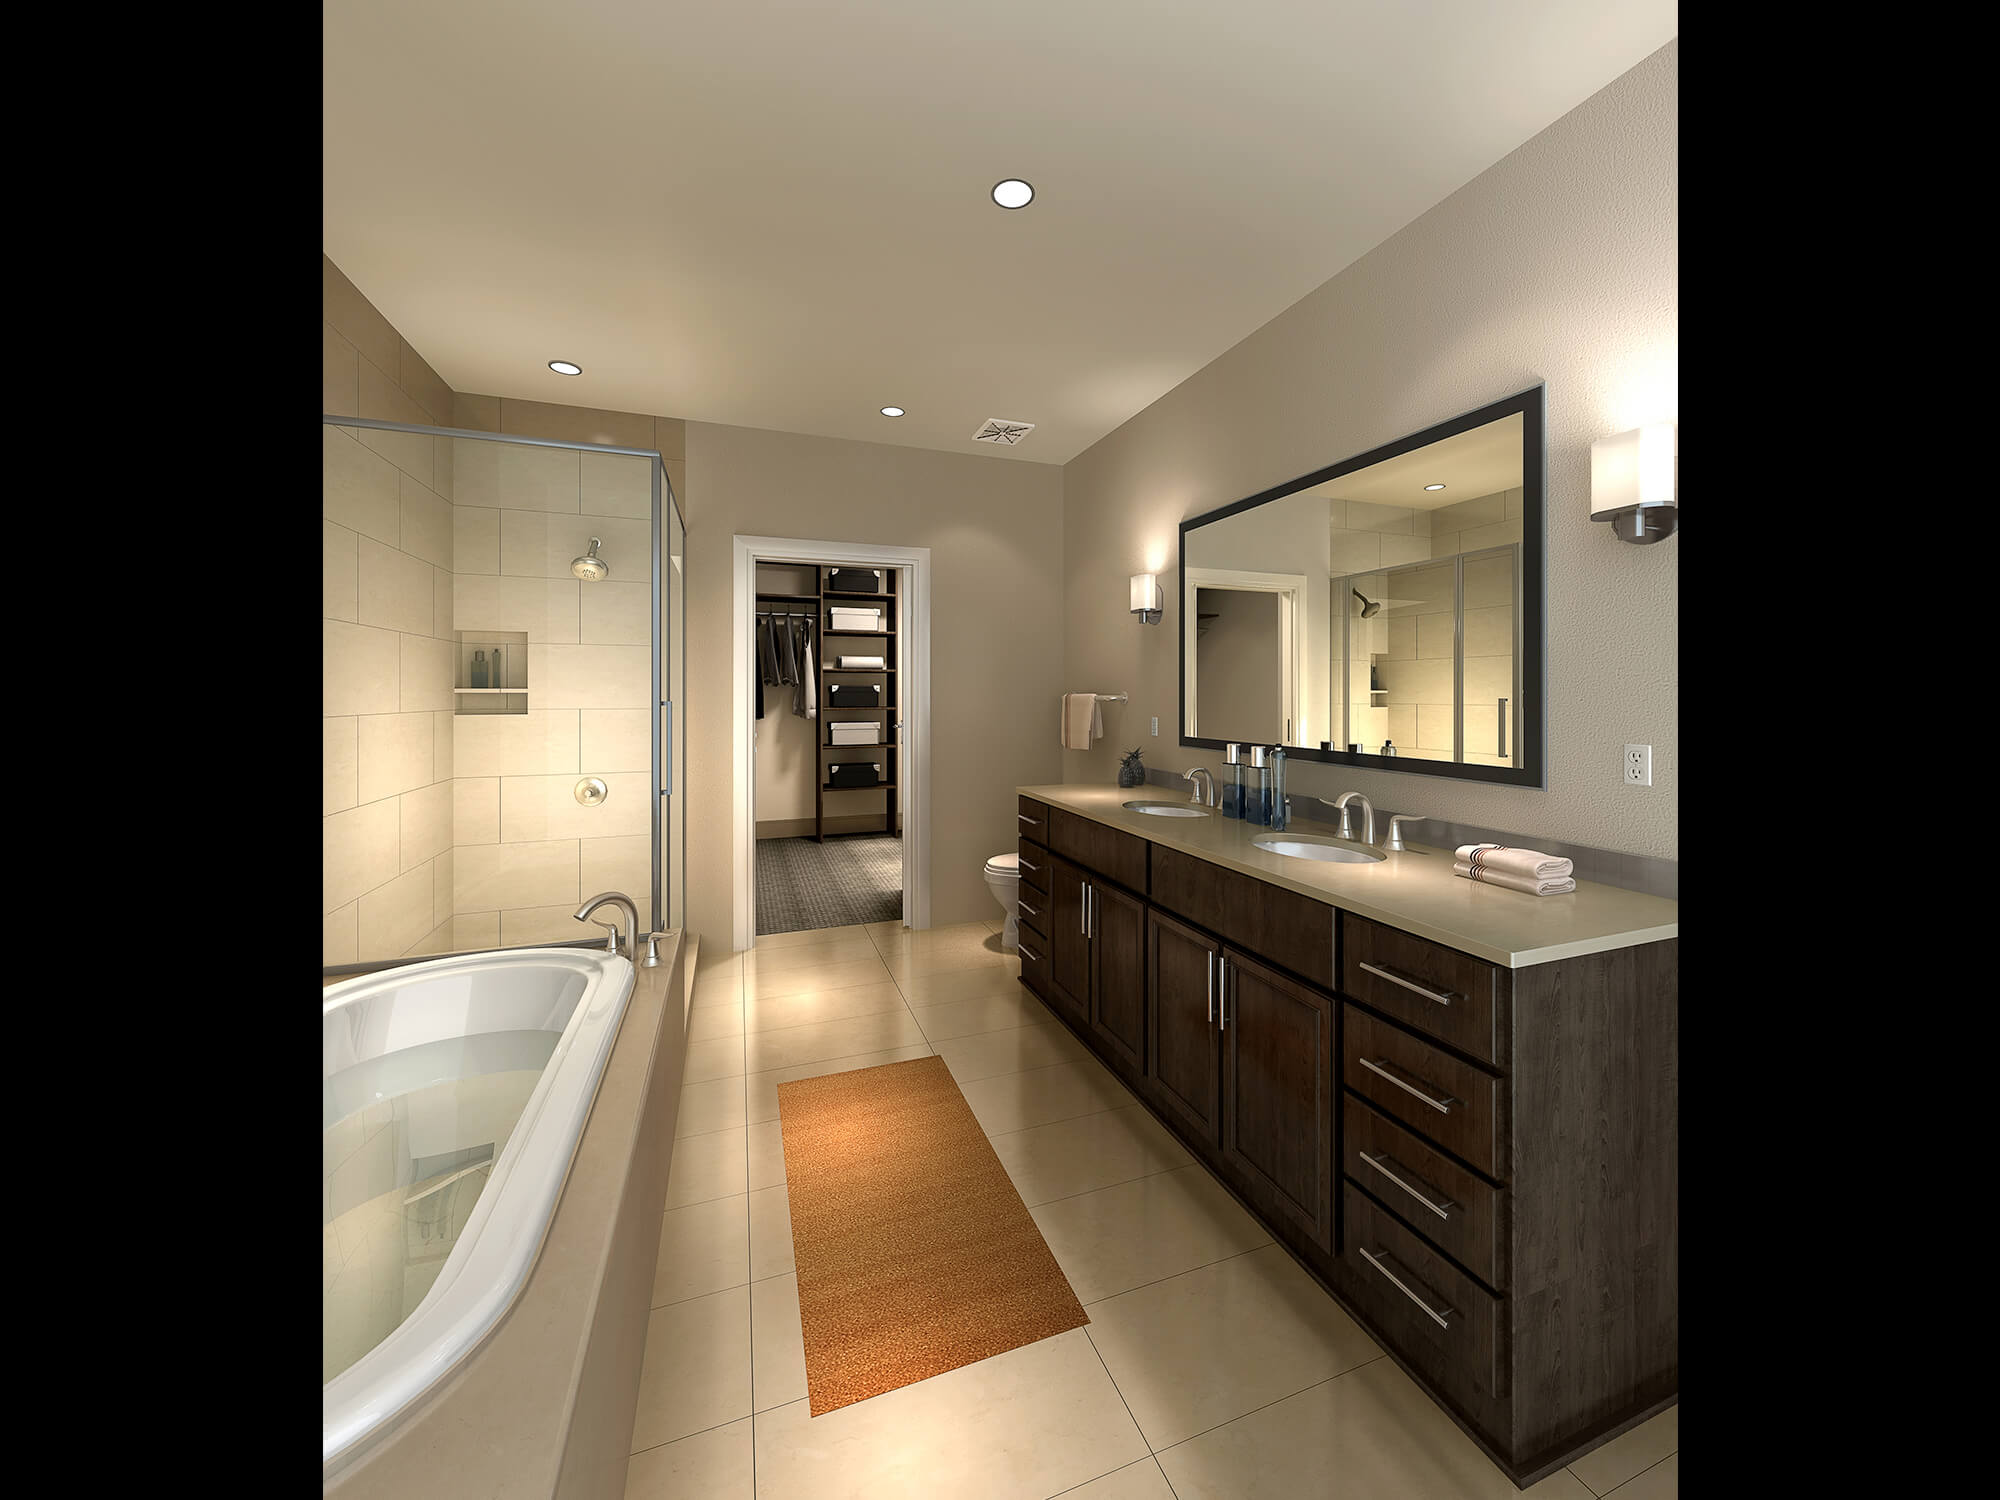 Milam bathroom and kitchen finishes at market square tower for Bathroom finishes